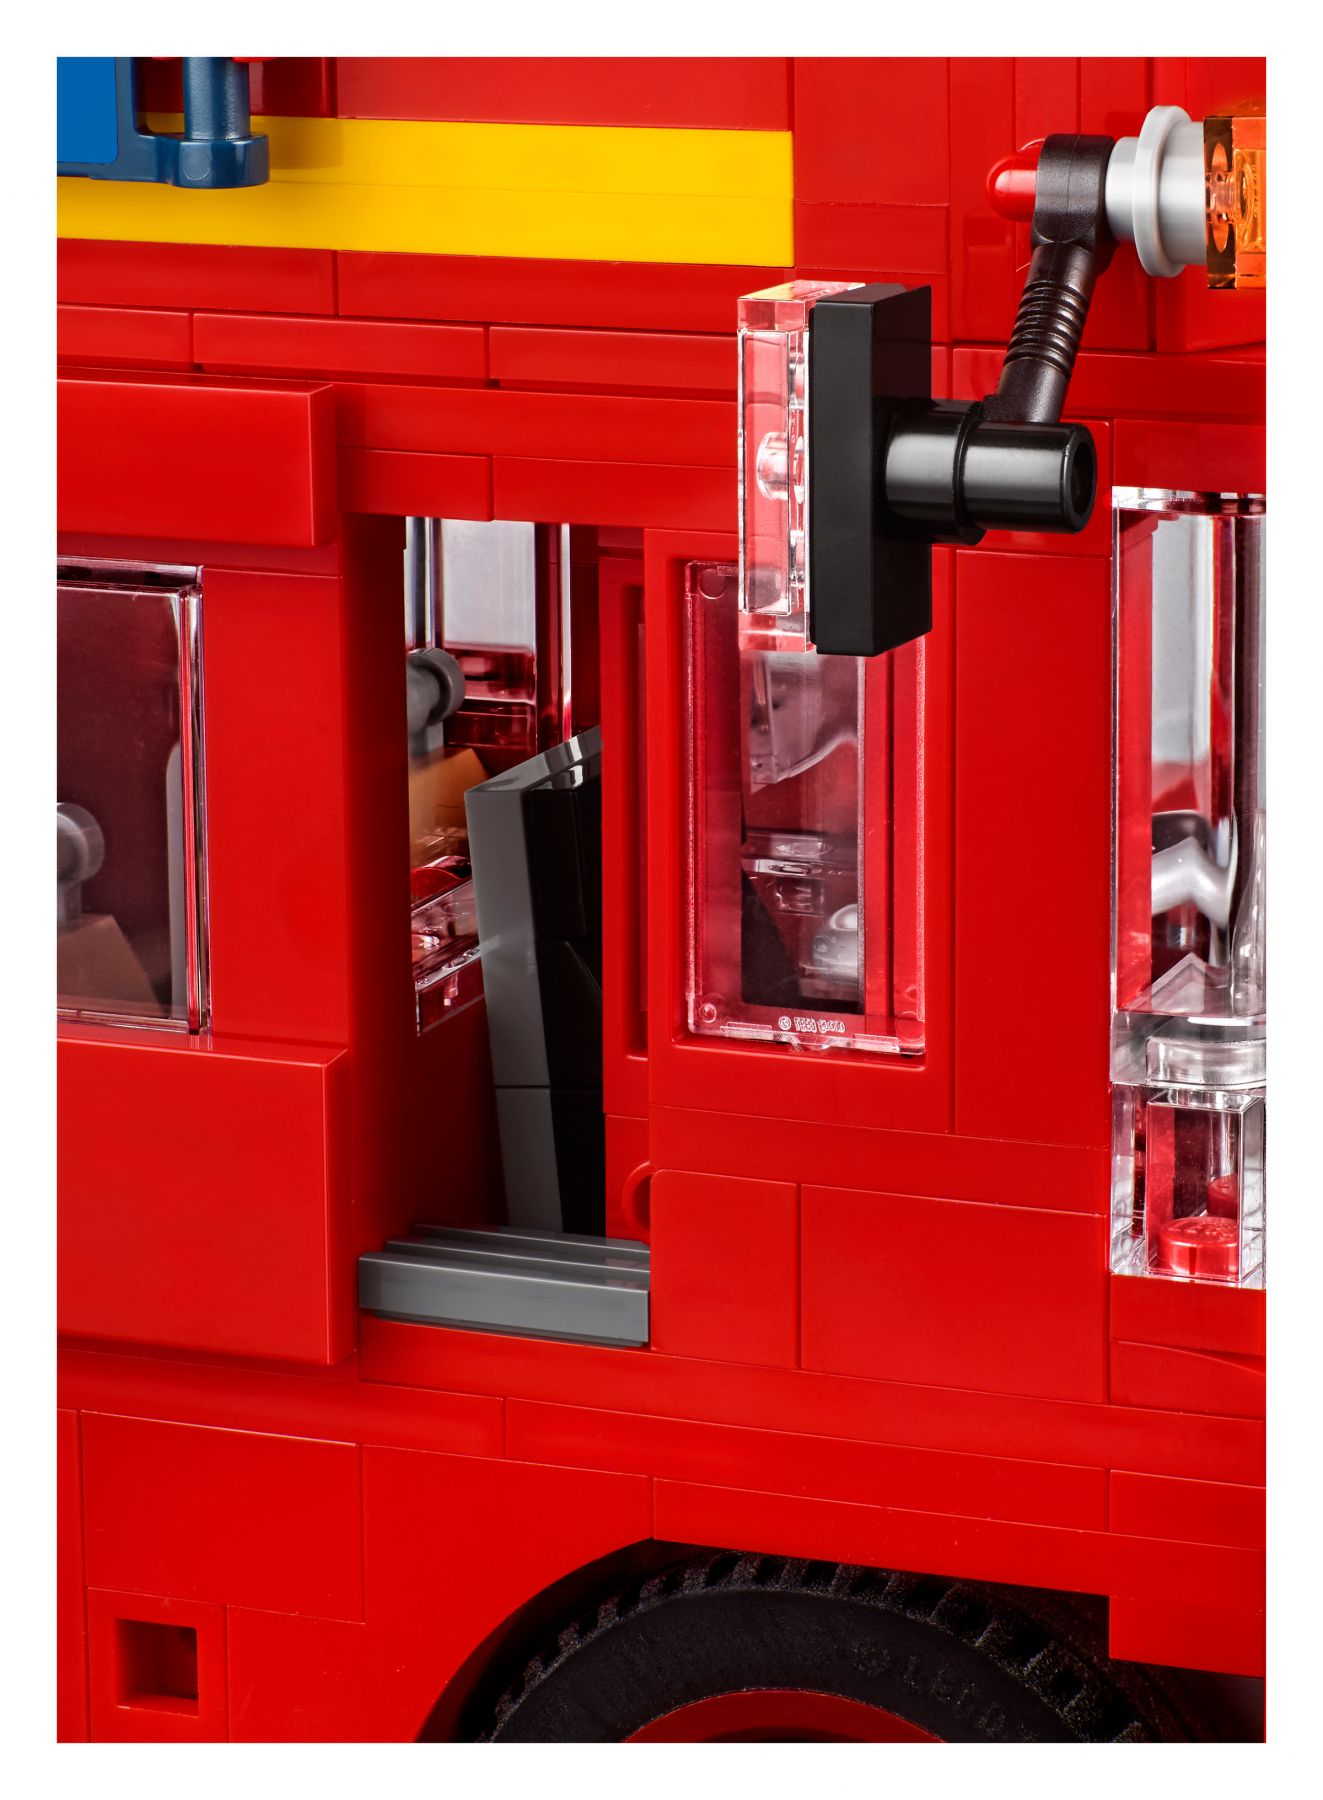 LEGO Advanced Models 10258 Doppeldecker Bus LEGO_10258_alt6.jpg